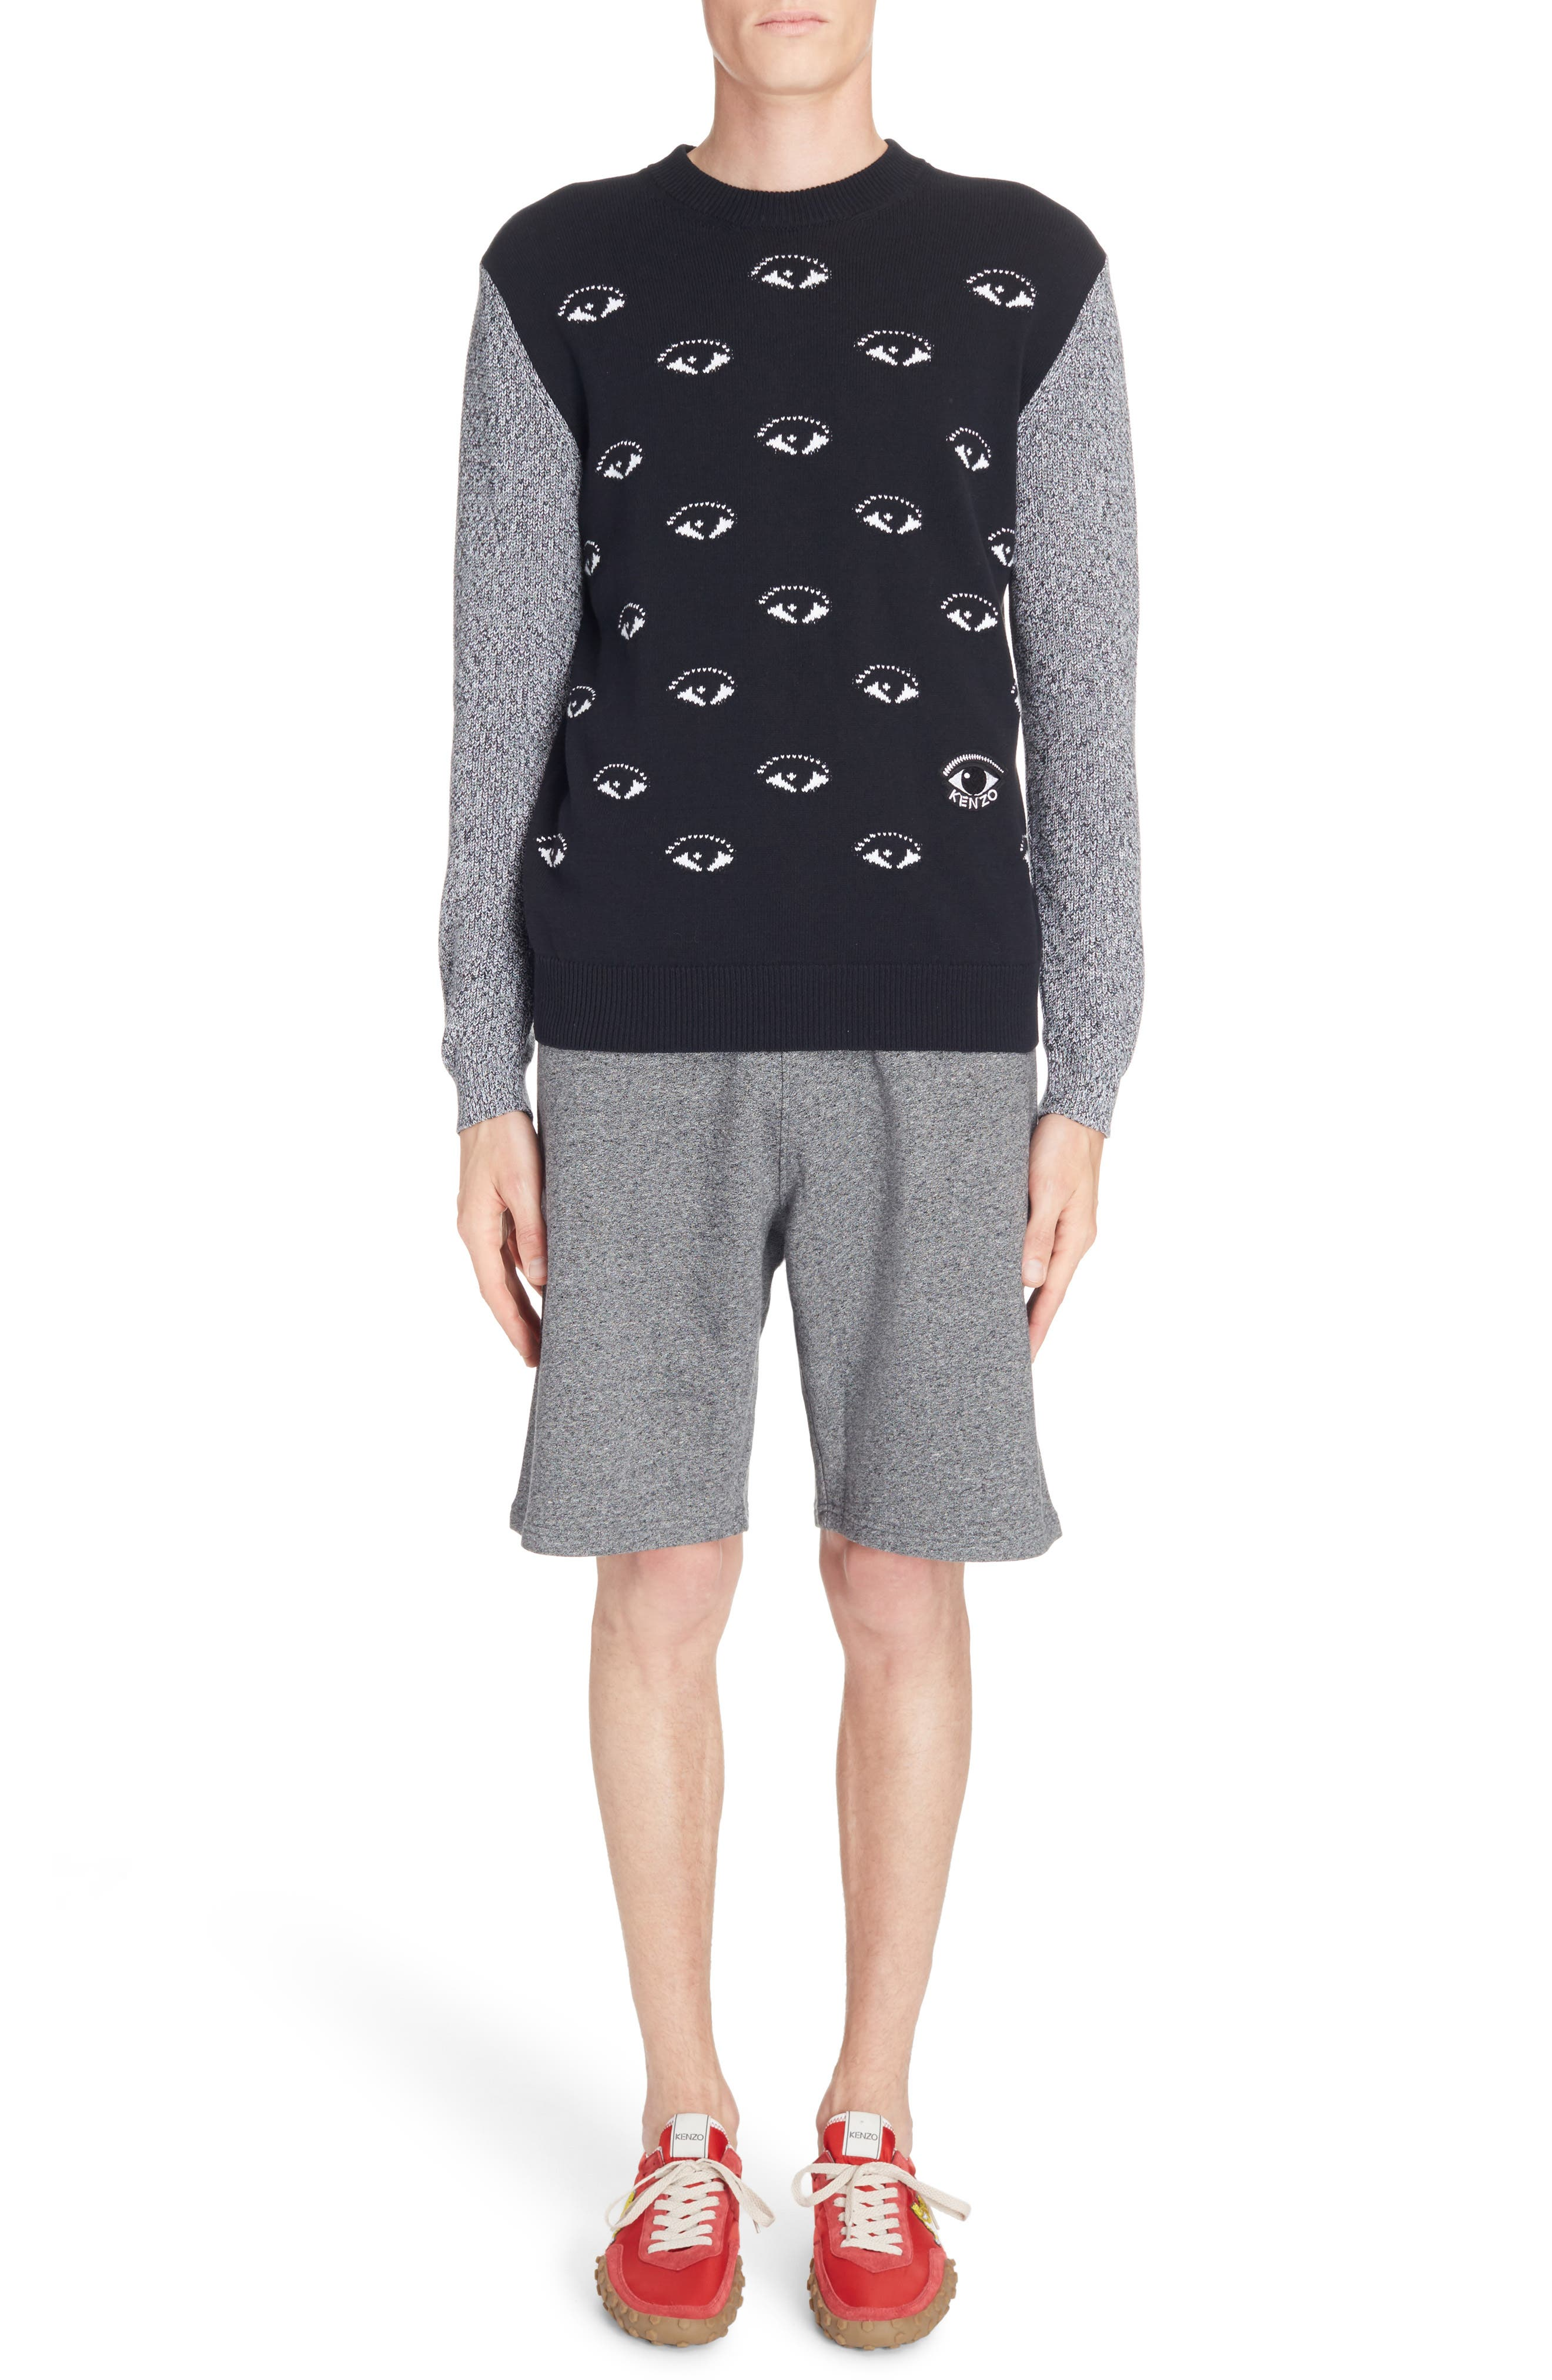 All Eyes Print Crewneck Sweater,                             Main thumbnail 1, color,                             Black